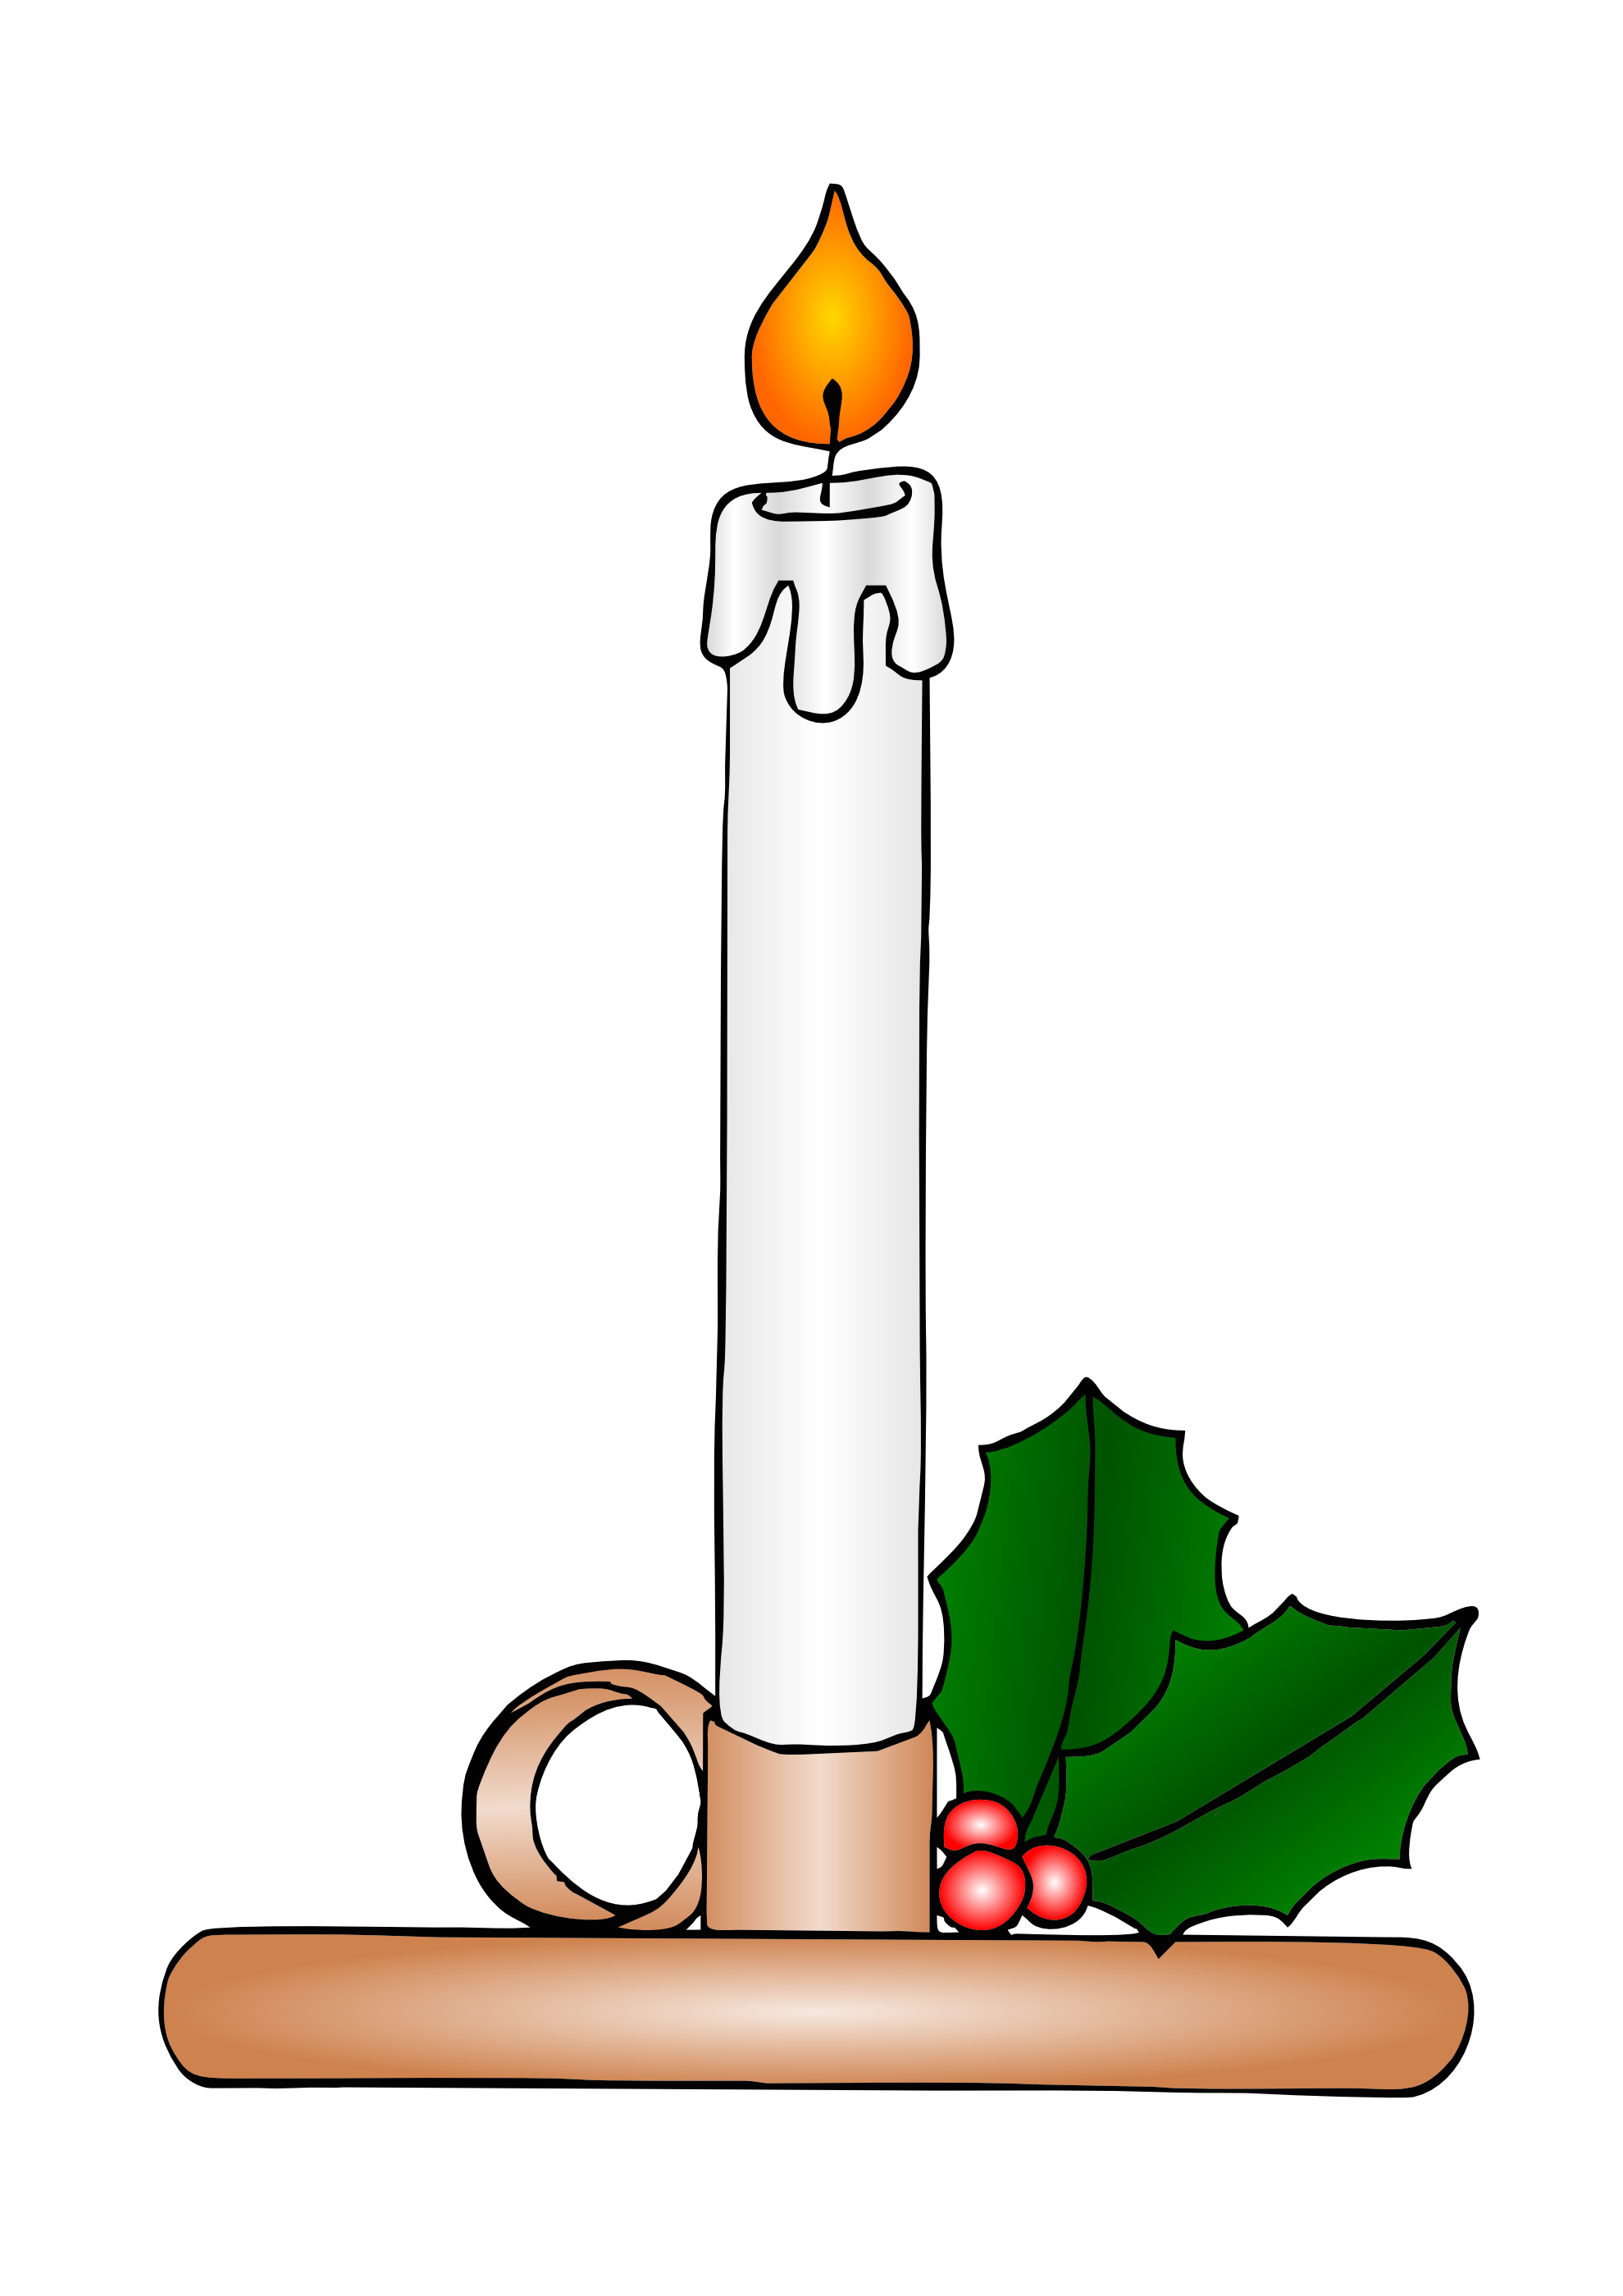 Christmas candles clipart black and white free clip transparent library Free Christmas Candles Clipart, Download Free Clip Art, Free Clip ... clip transparent library